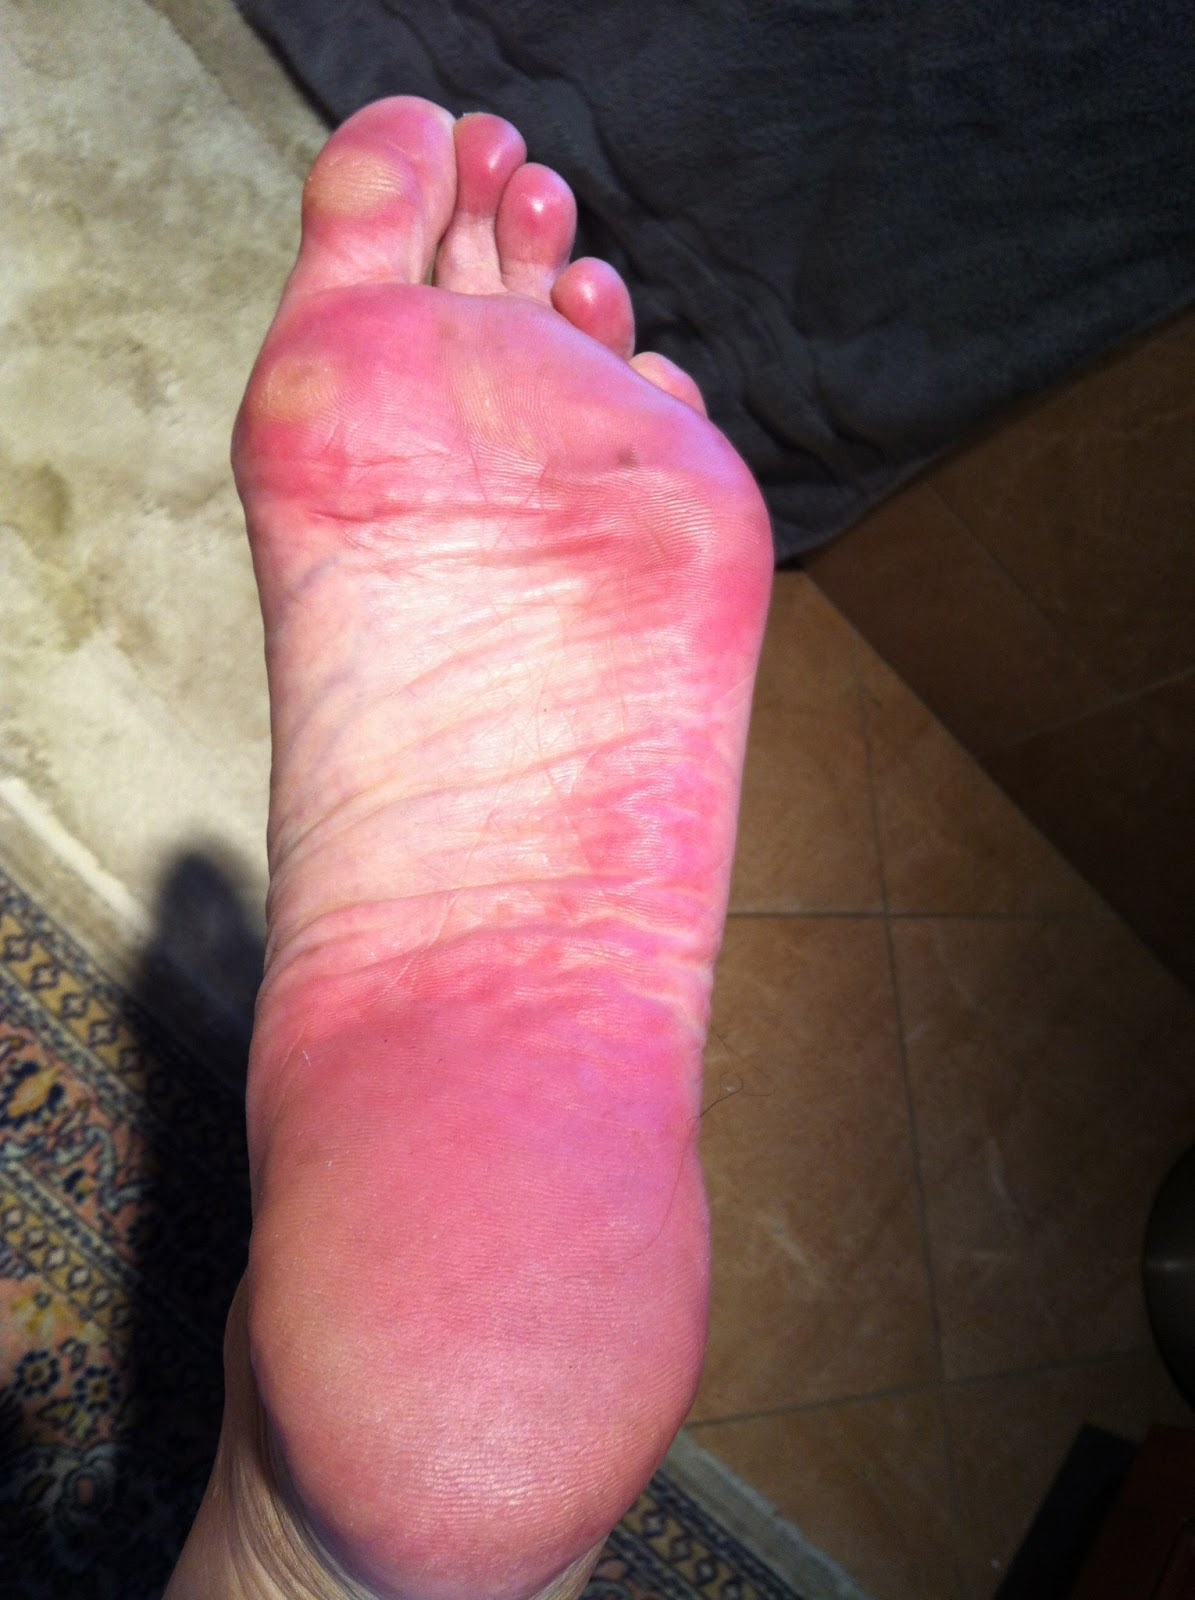 Rough discolored skin on bottom of foot